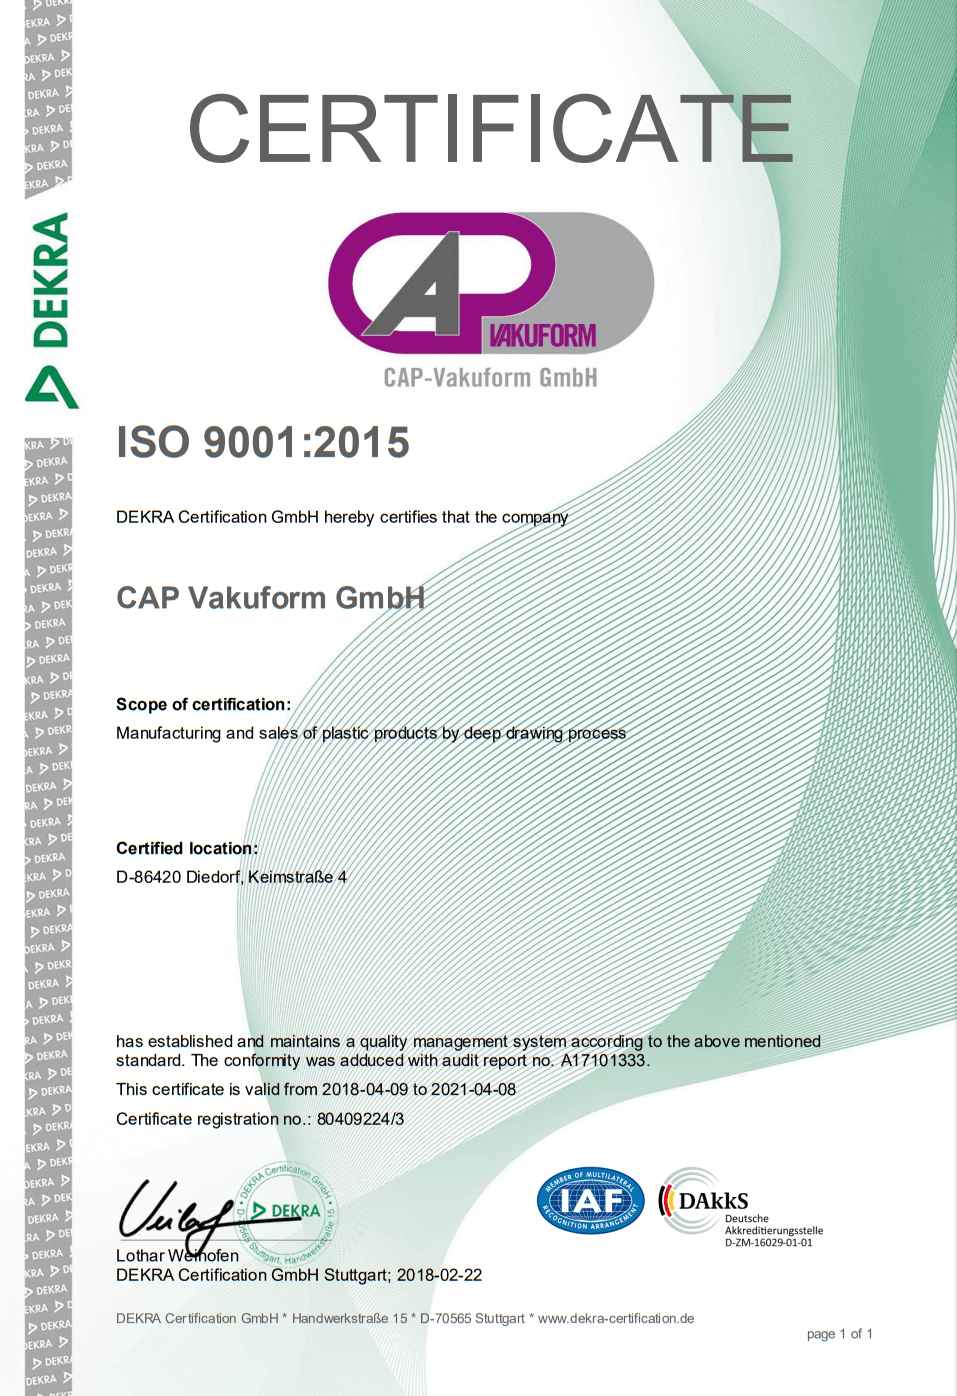 CAP Vakuform GmbH certificate for manufacturing and sales of deepdrawn plastic products